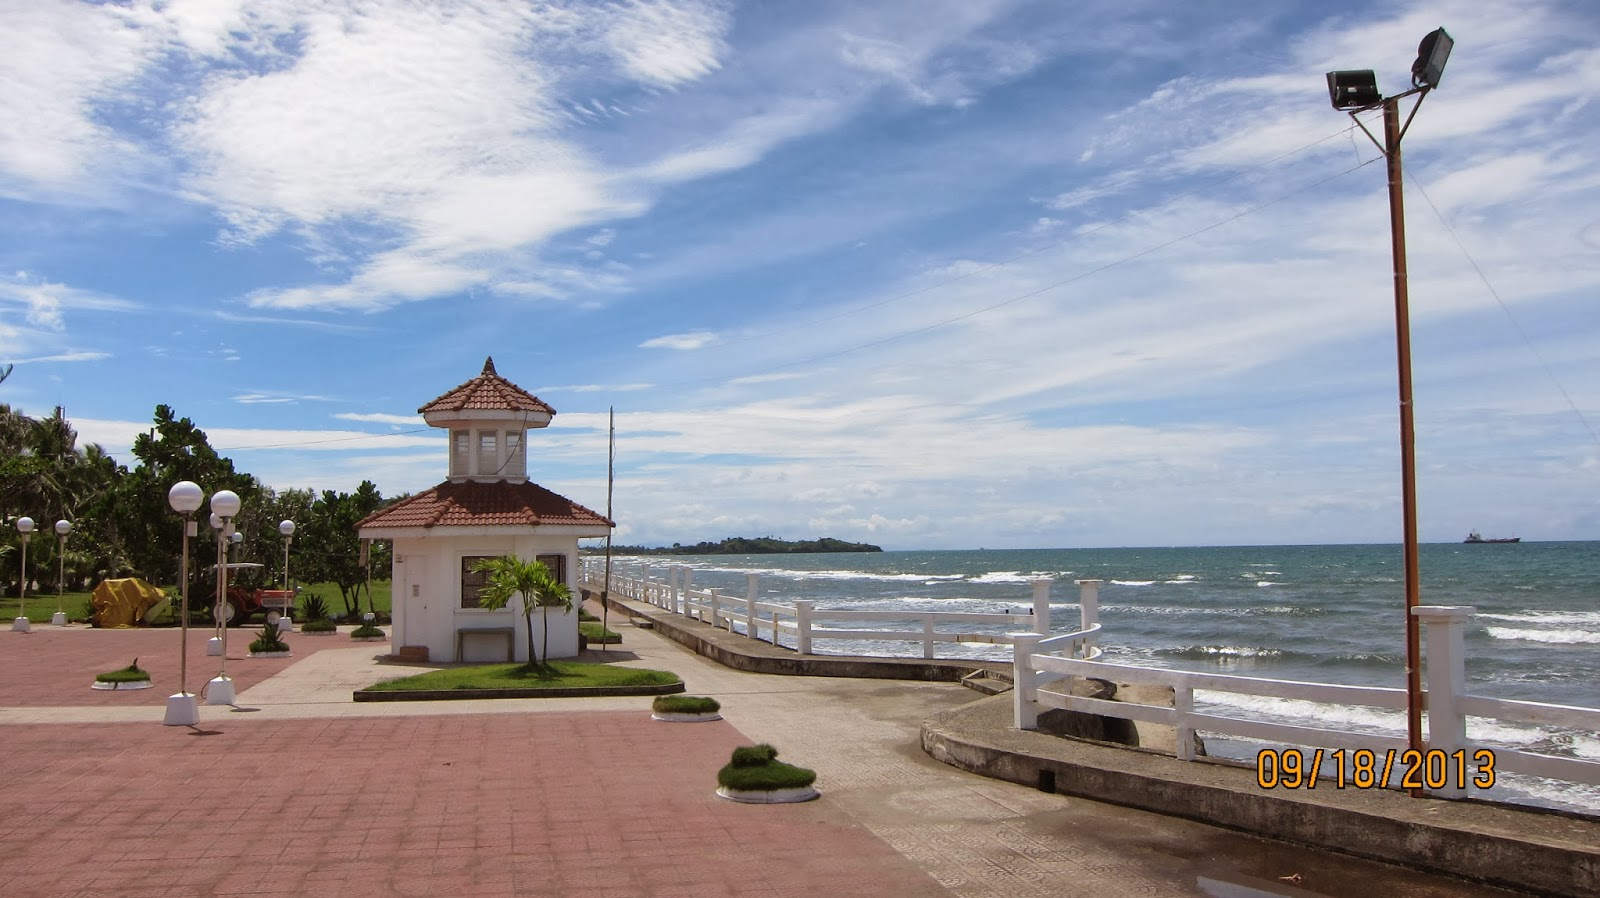 The Solitary Dolphin: A Visit to Roxas City, the Countrys